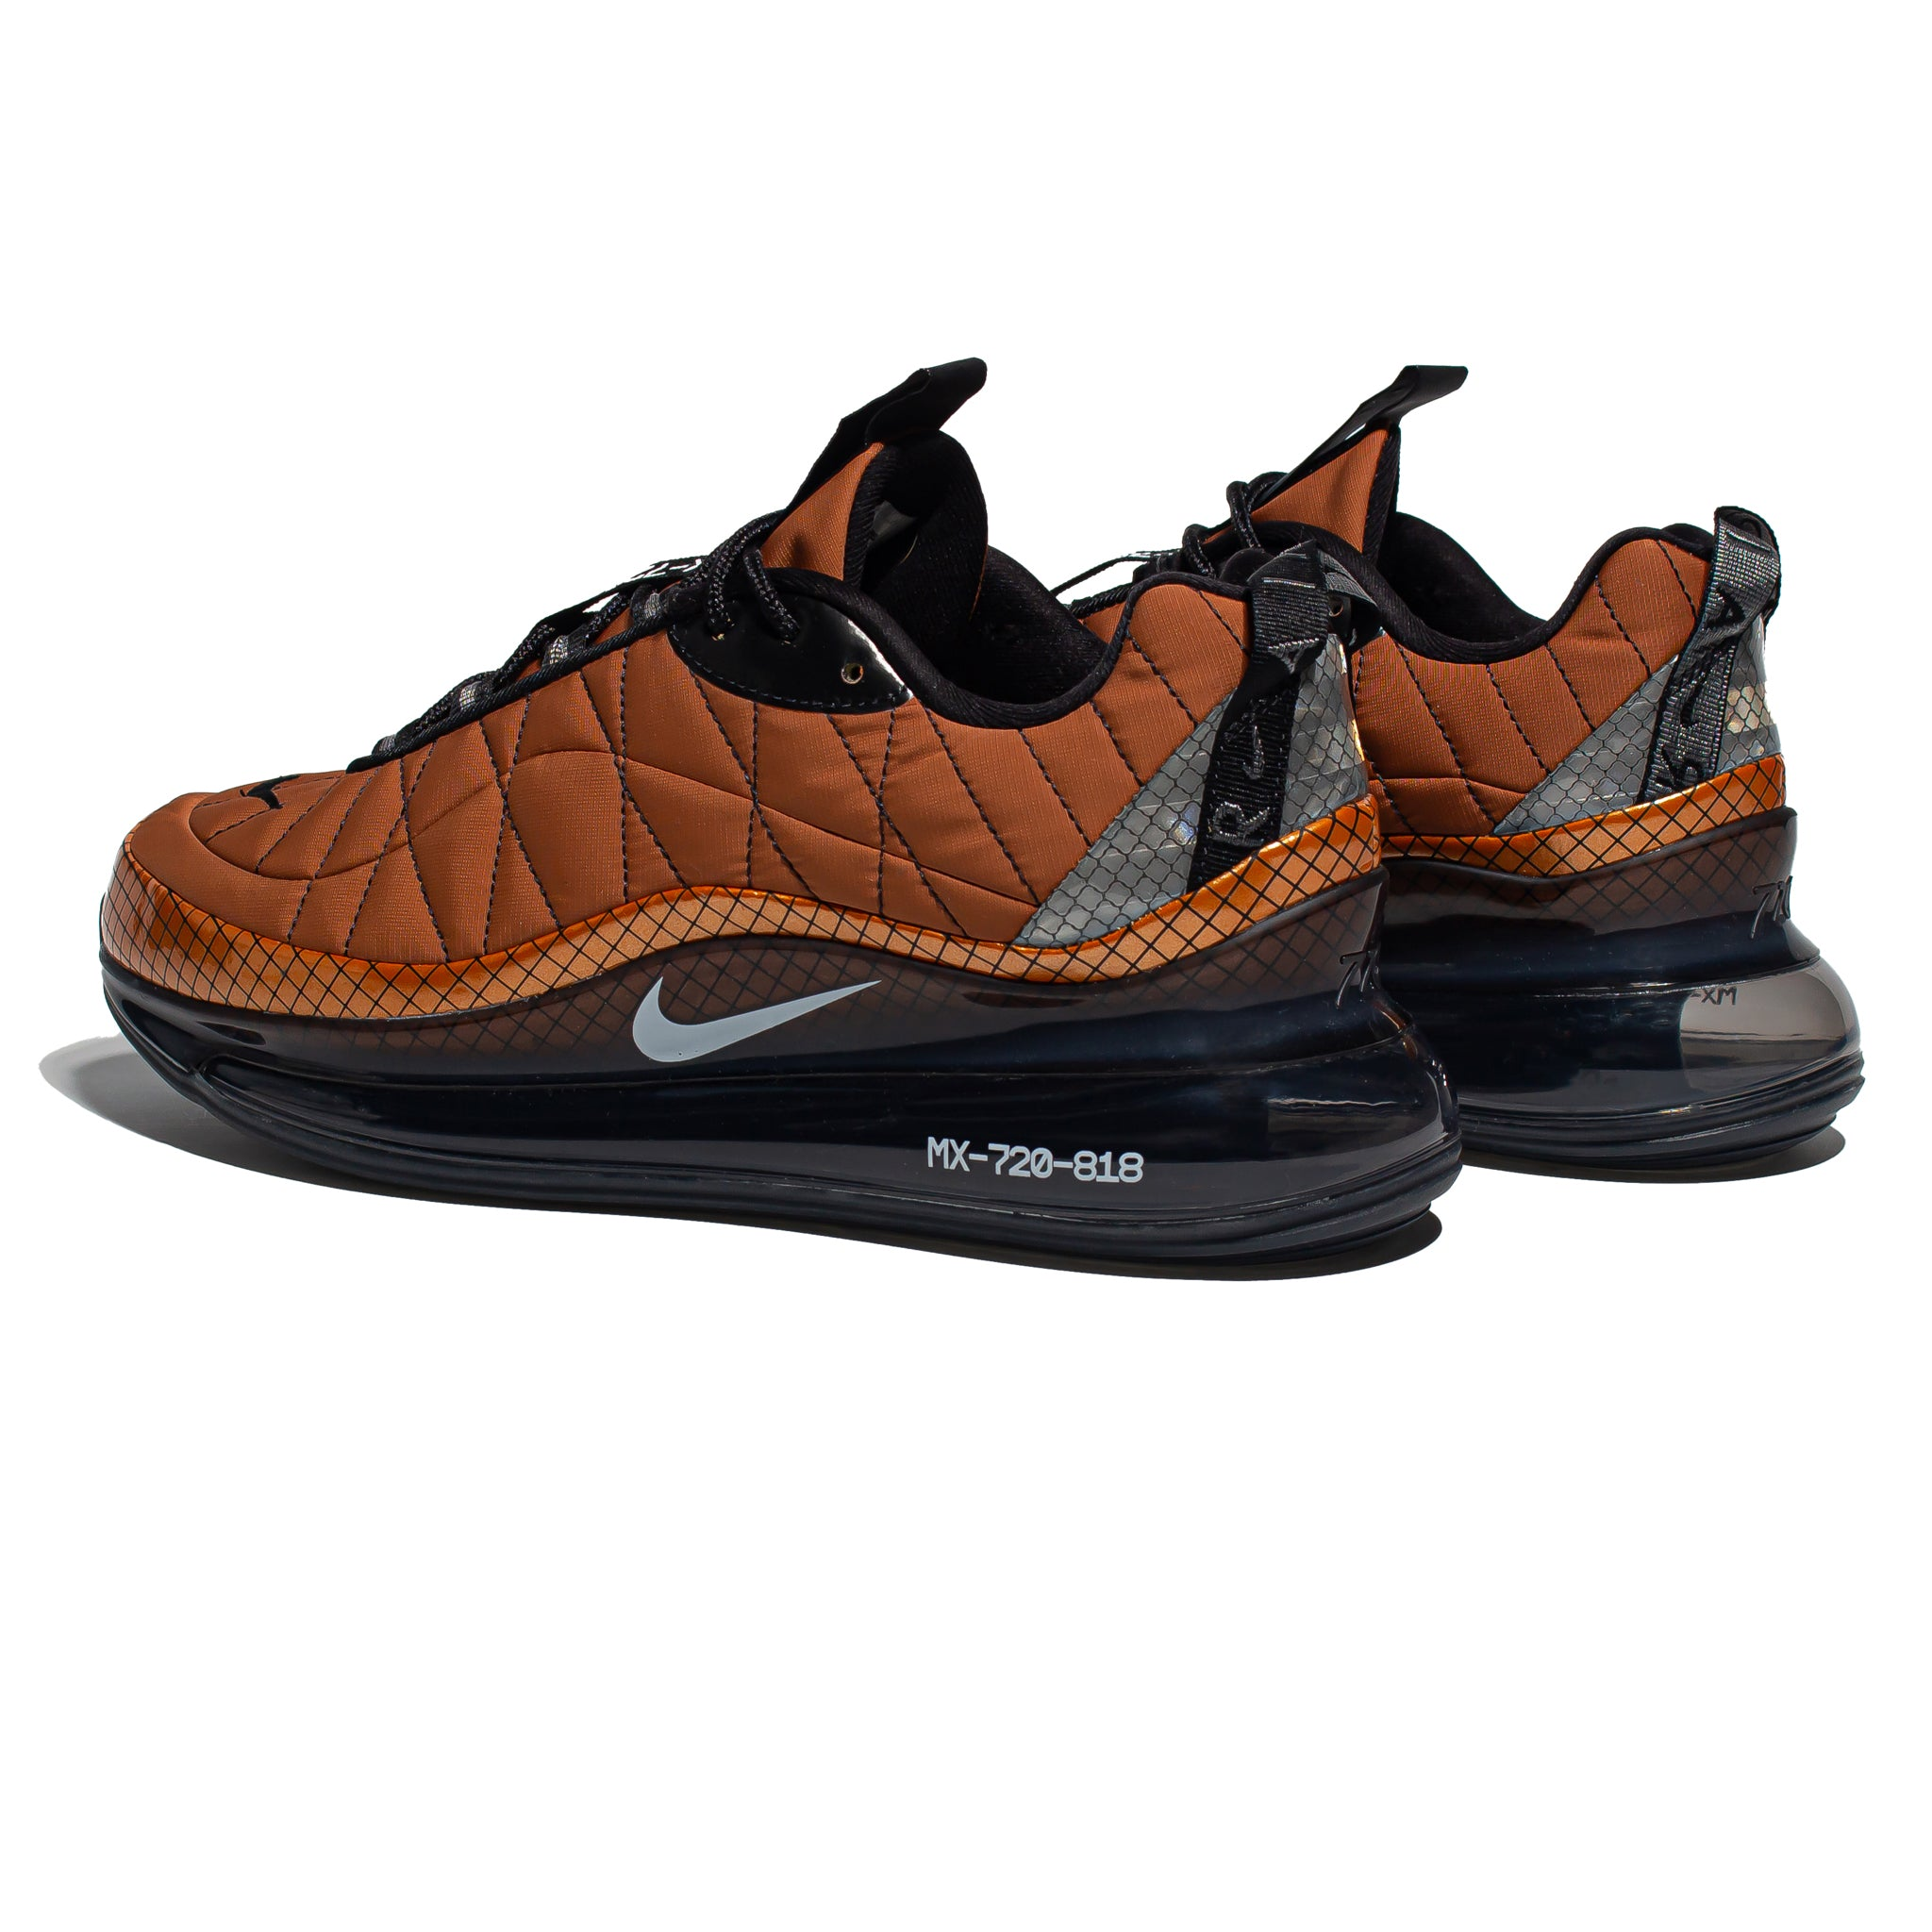 Nike MX-720-818 'Metallic Copper'